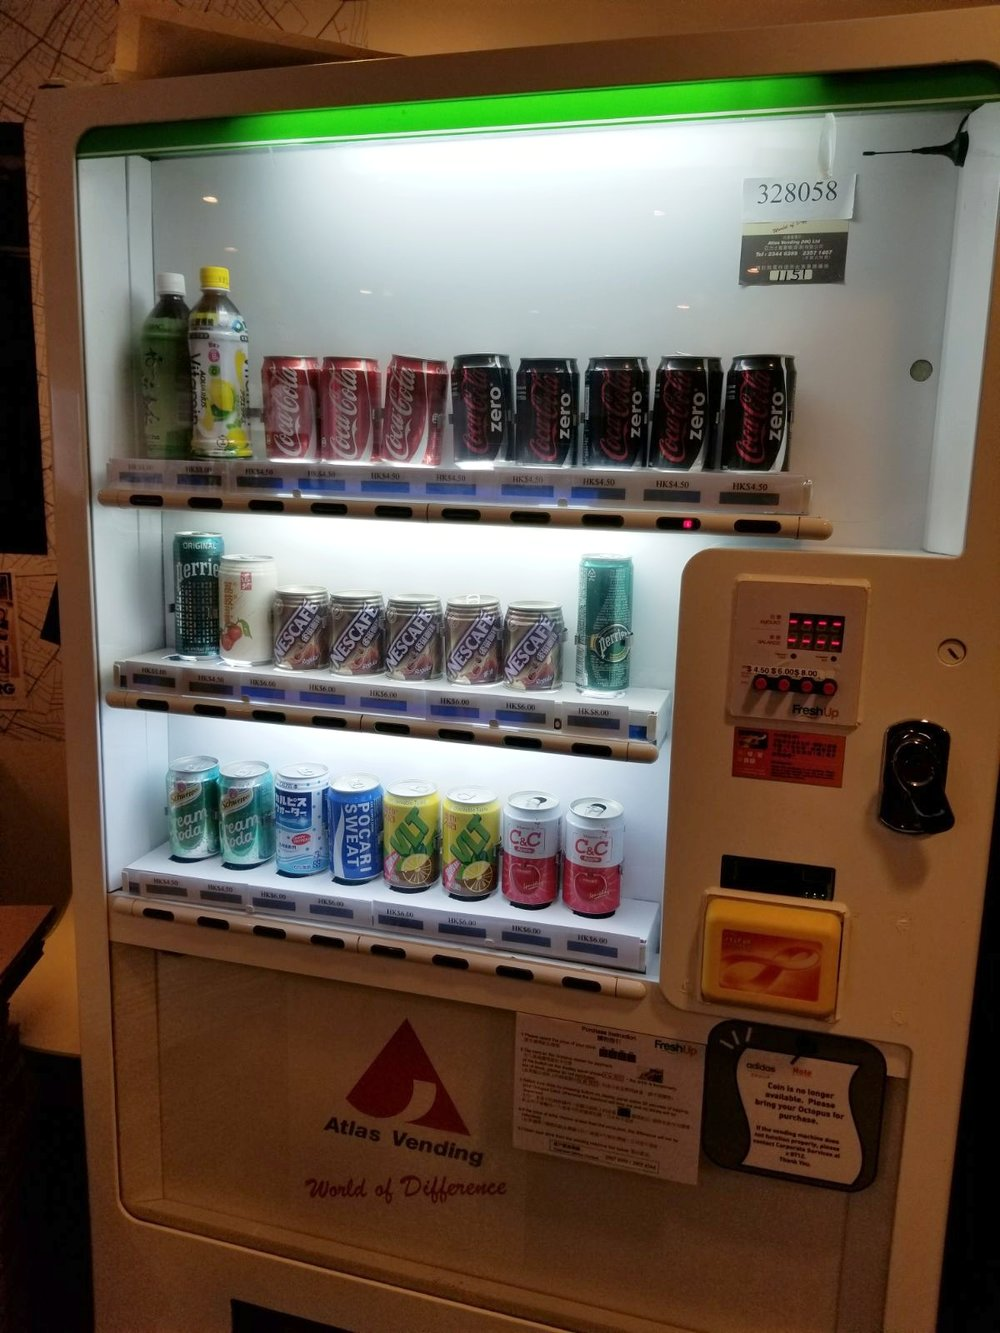 Freshup, vending machine hk, interactive, food, beverage, smart retail, convenient, vending services, professional, corporations, Adidas